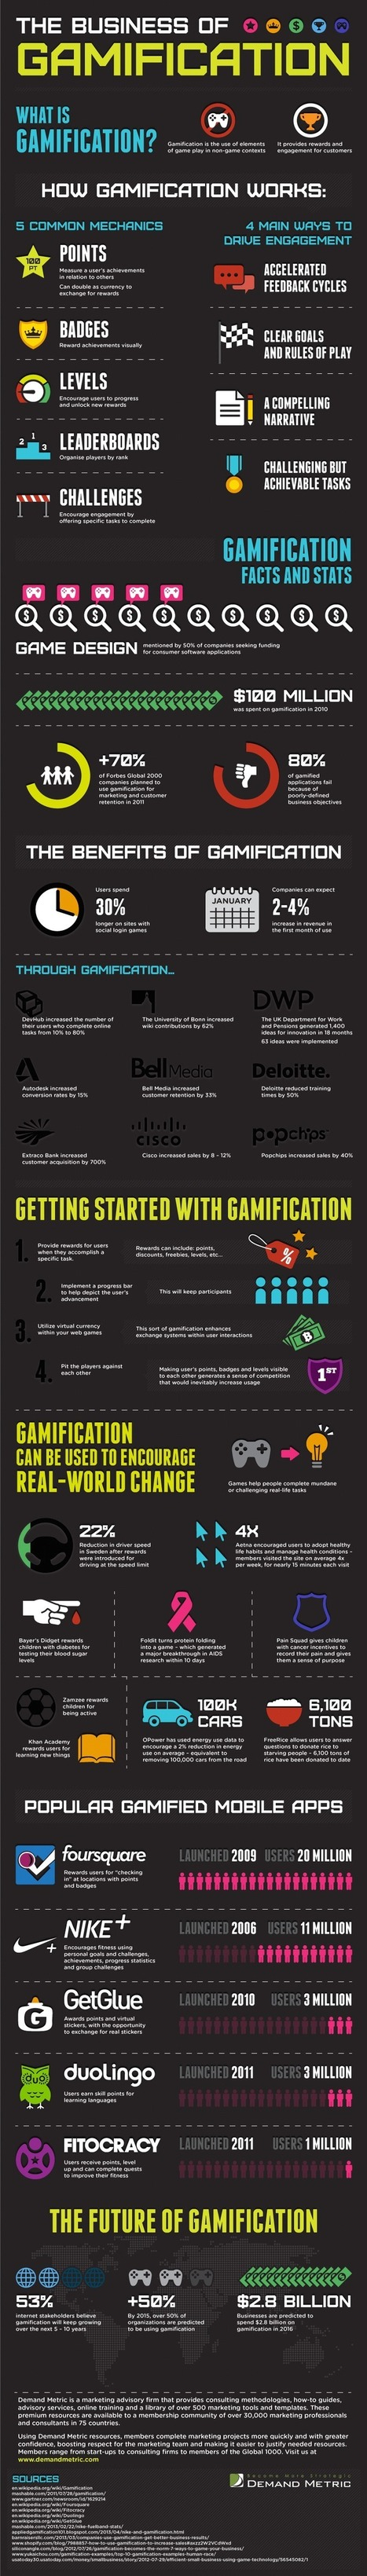 The Business of Gamification Infographic - LeadManagement.com | sm in healthcare | Scoop.it